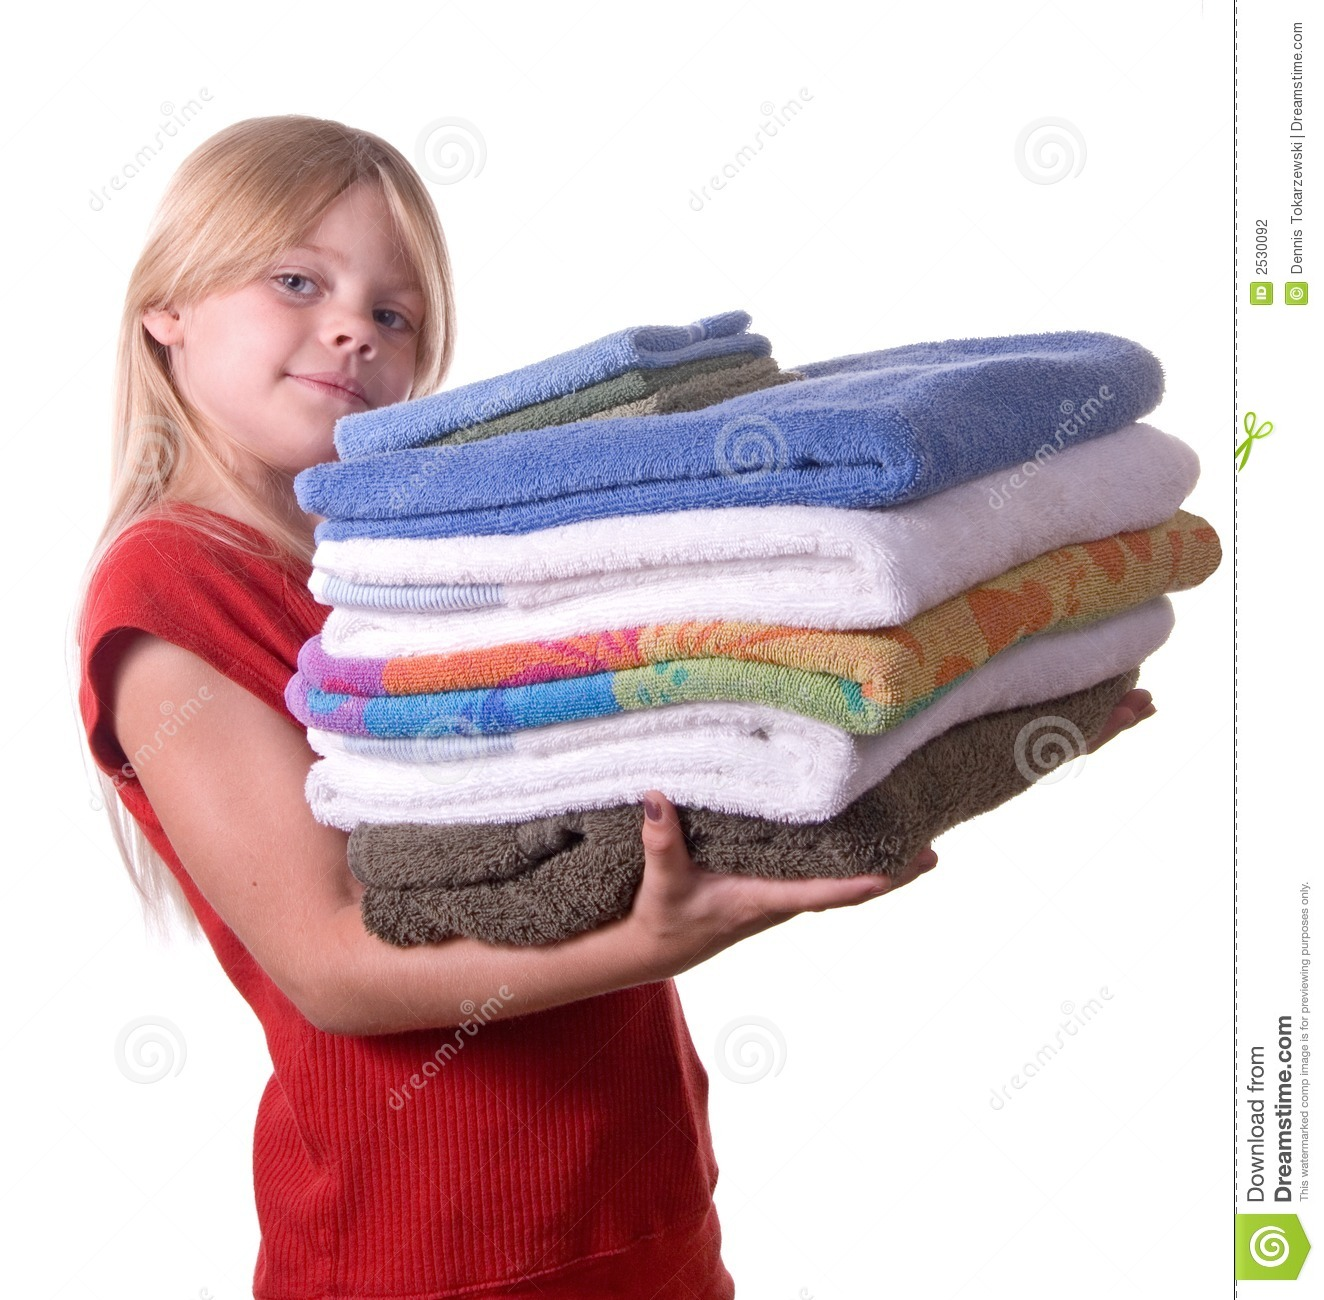 Young girl helping with laundry carrying towels.